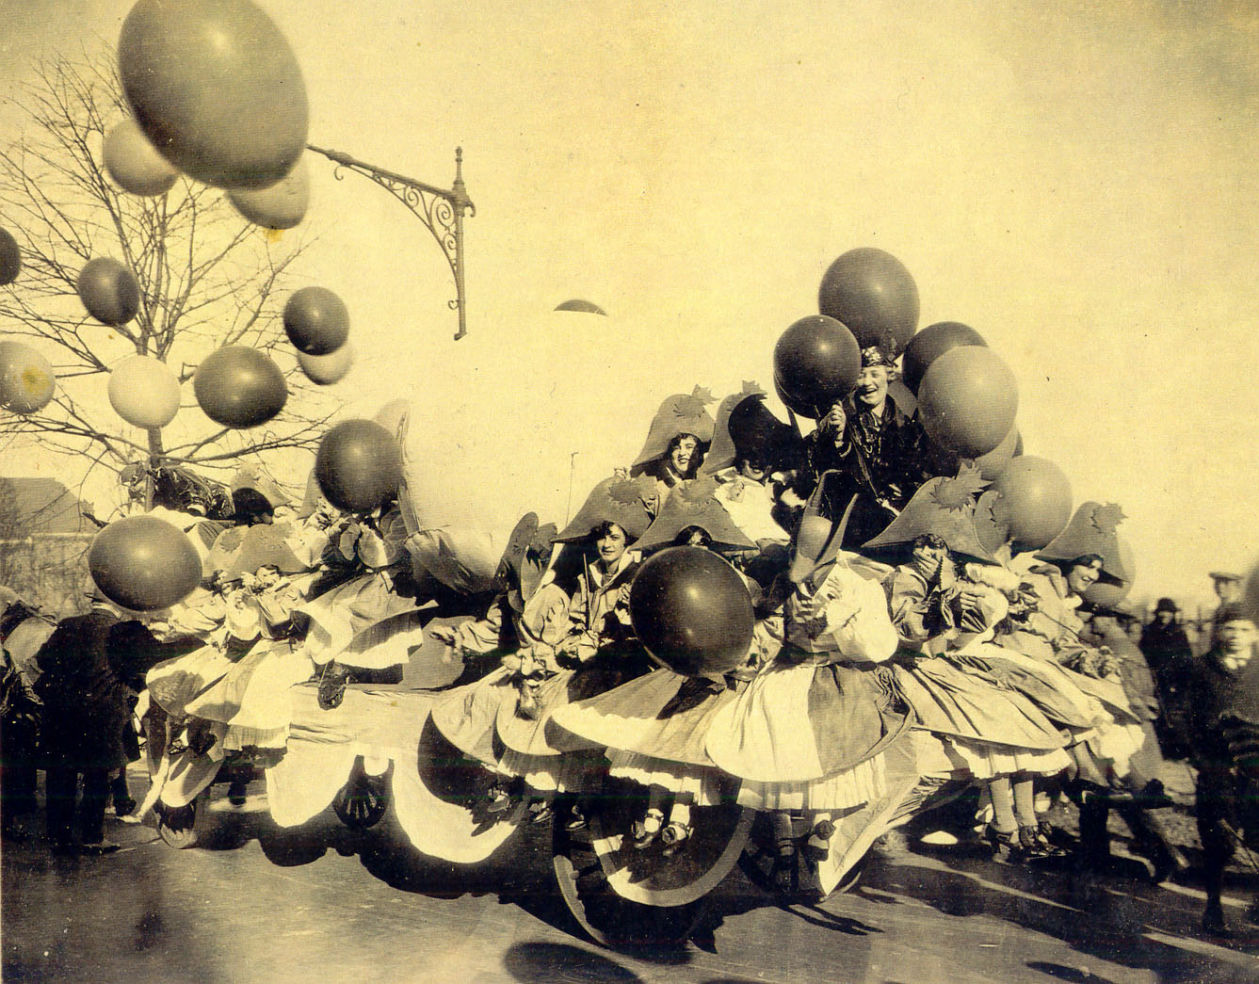 Balloonatics Float 1926. Inspired creation of character balloons